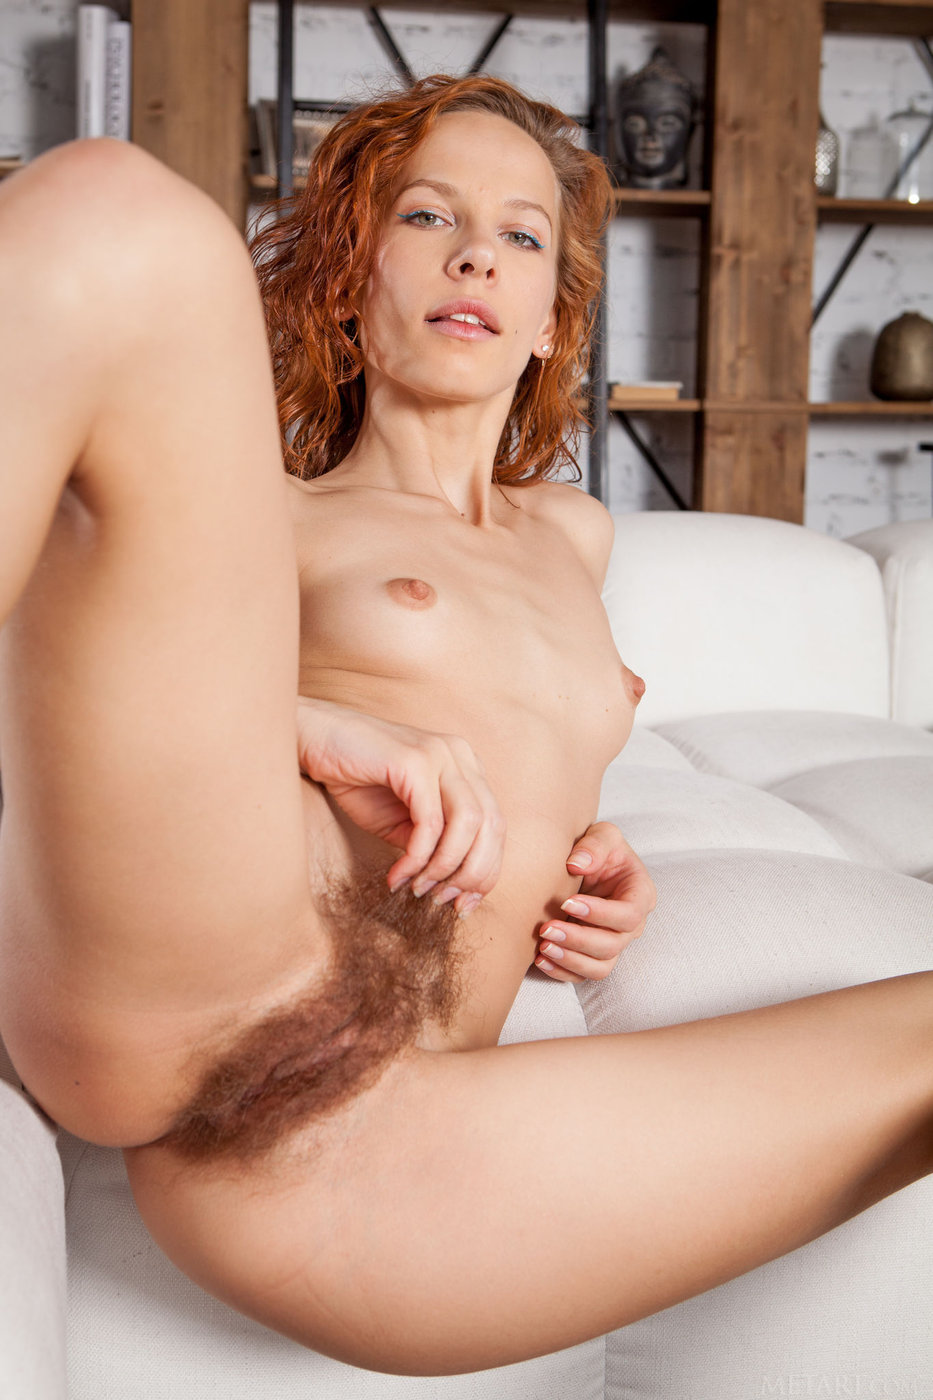 Hairy Ginger Nude